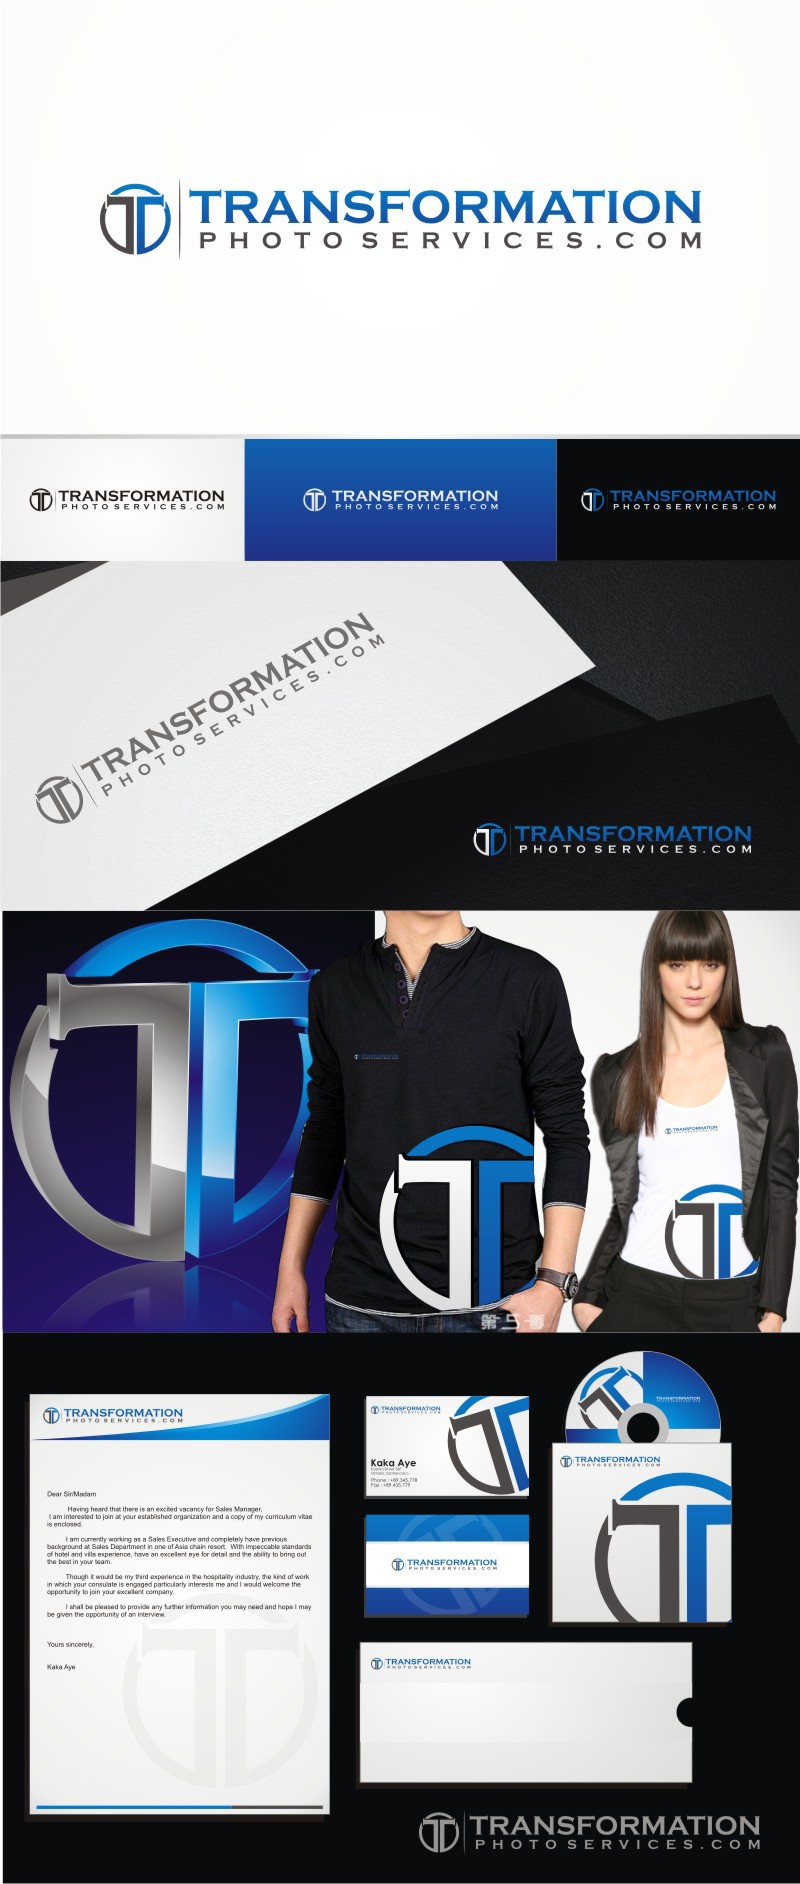 Help Transformation Photo Services with a new logo